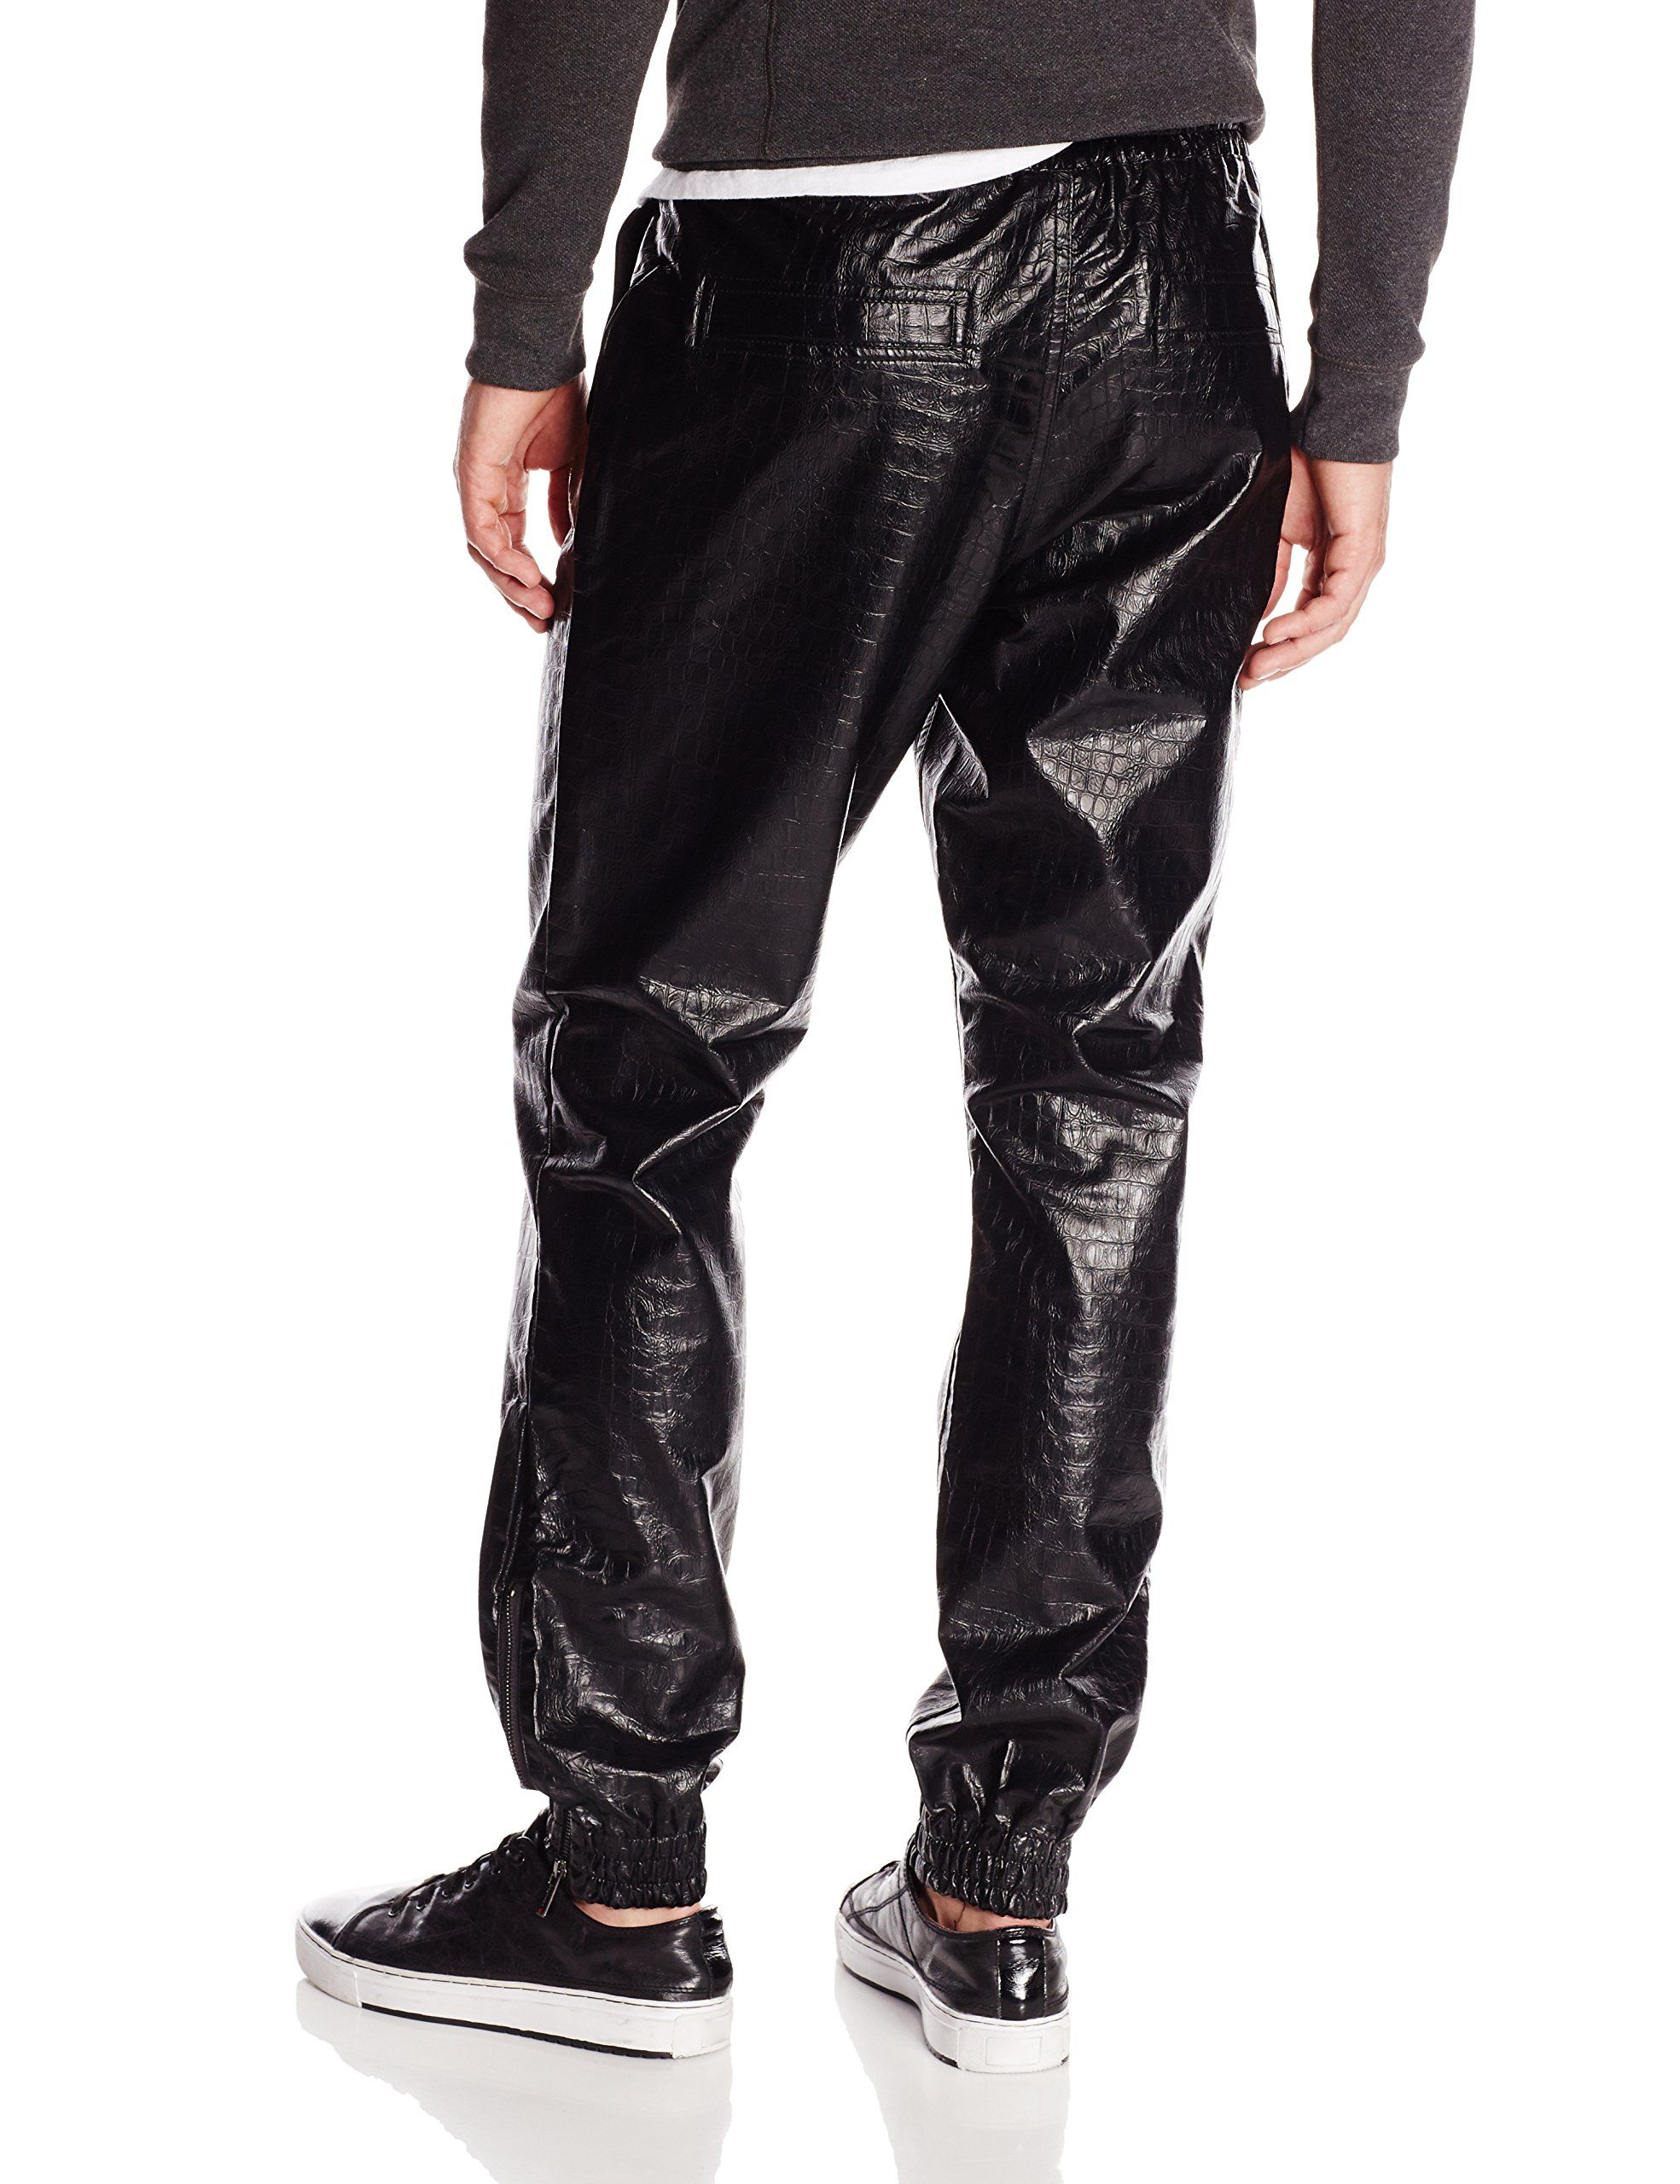 Southpole Men's Jogger Pants In Alligator Faux Leather, Black, X-Large at  Amazon